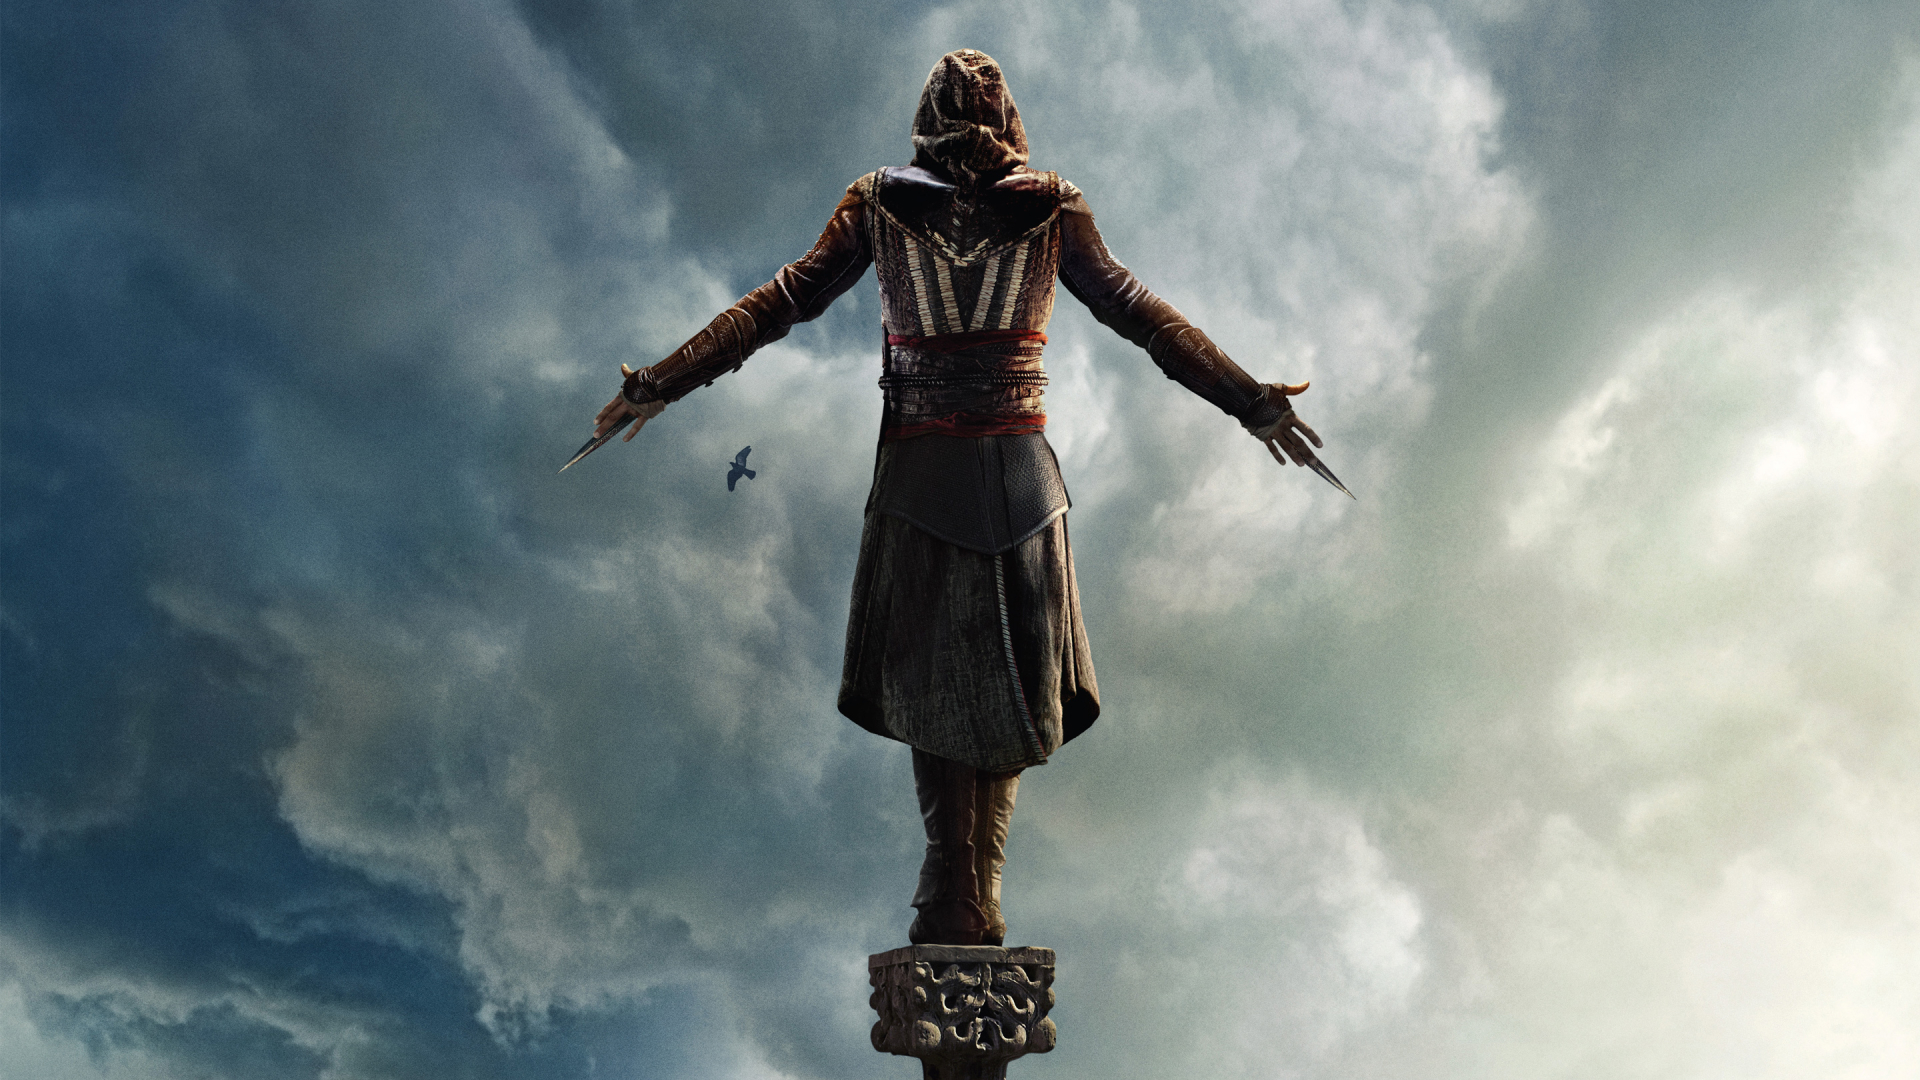 Assassin's Creed (2016) images Assassin Creed Wallpaper HD wallpaper and background photos